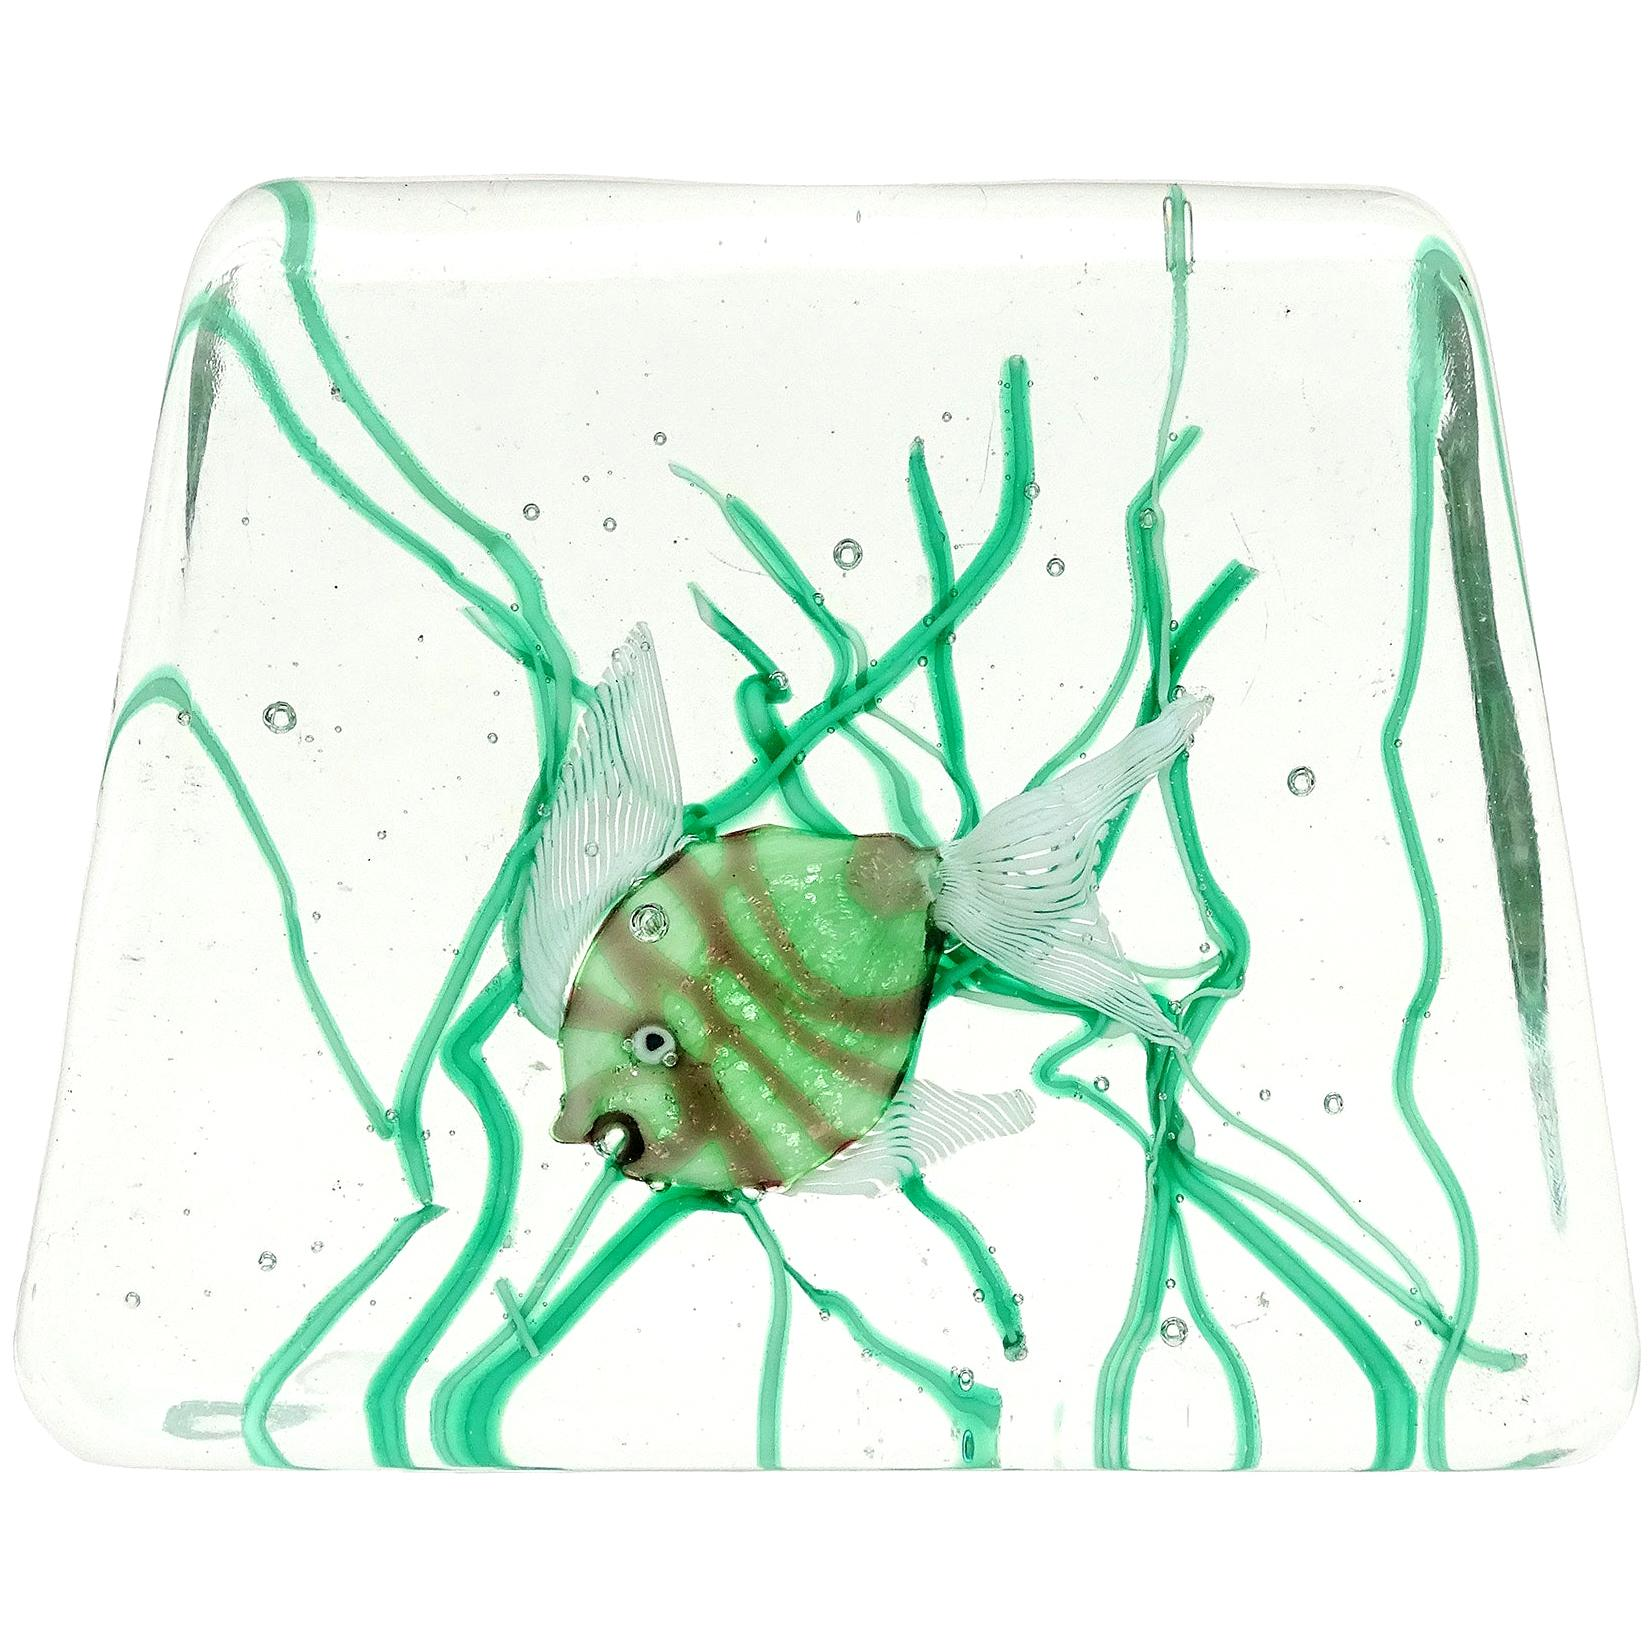 Fratelli Toso Murano Green Fish Italian Art Glass Aquarium Paperweight Sculpture